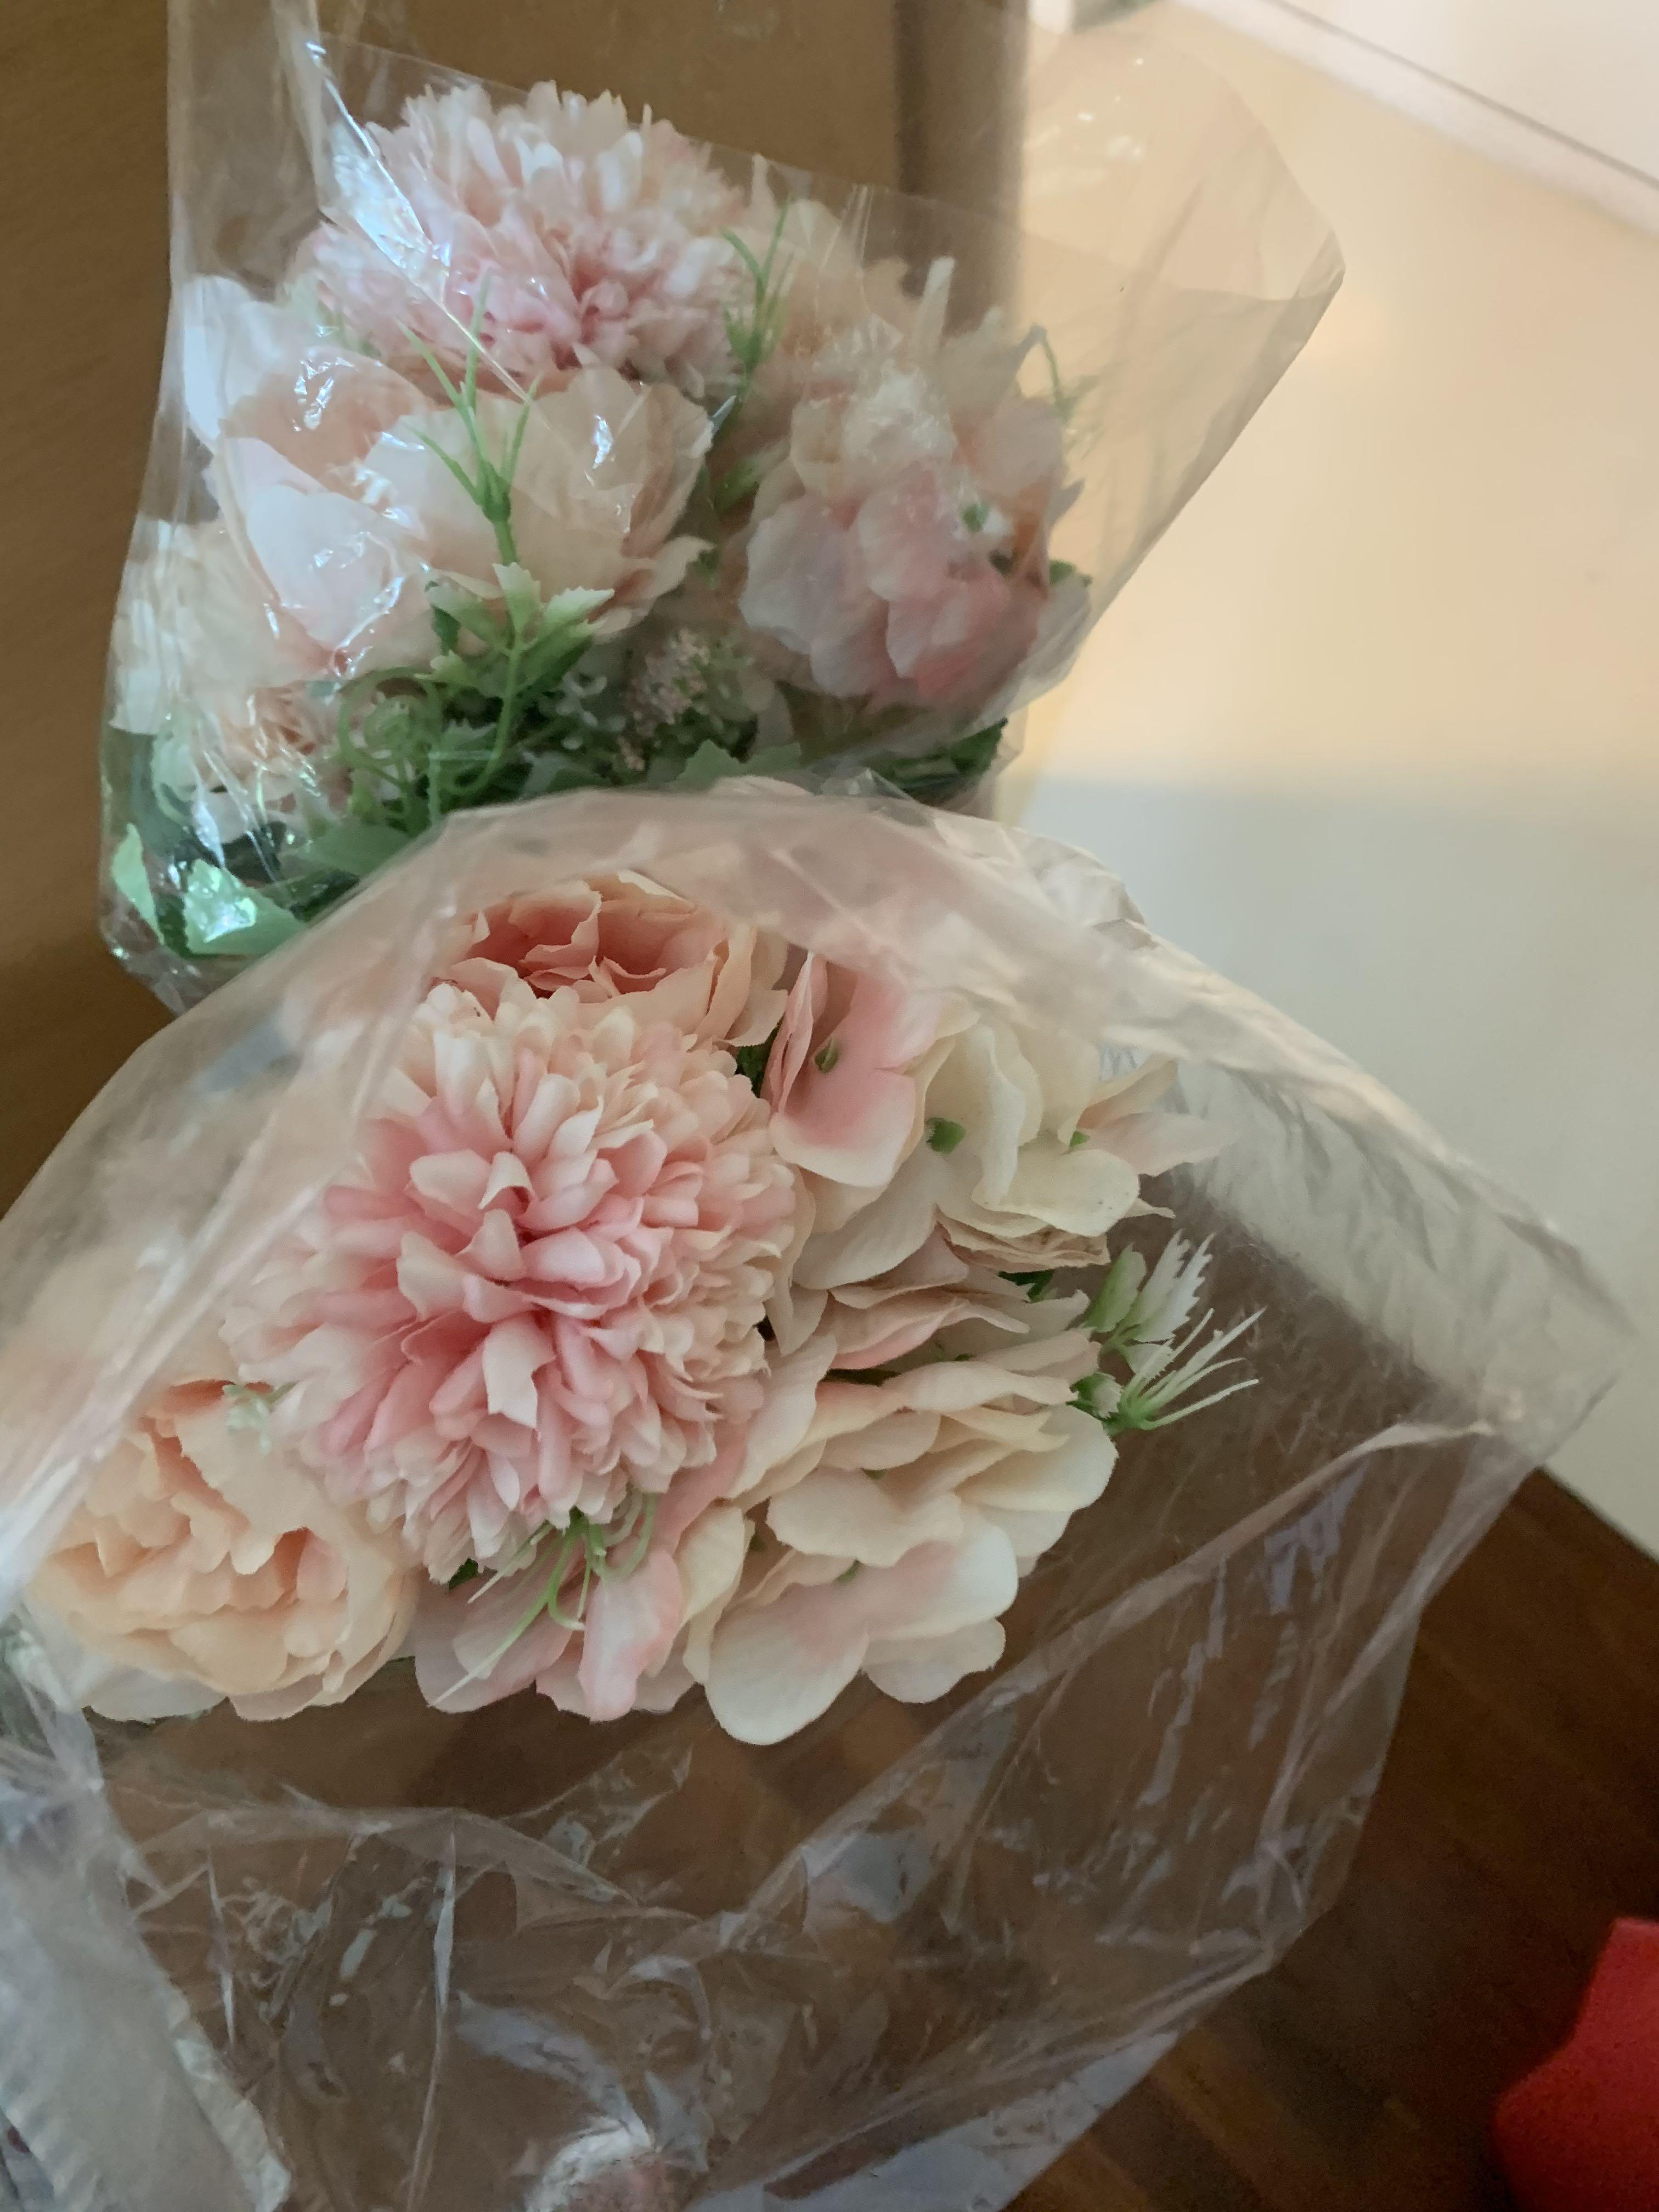 Artificial flower Buoquet